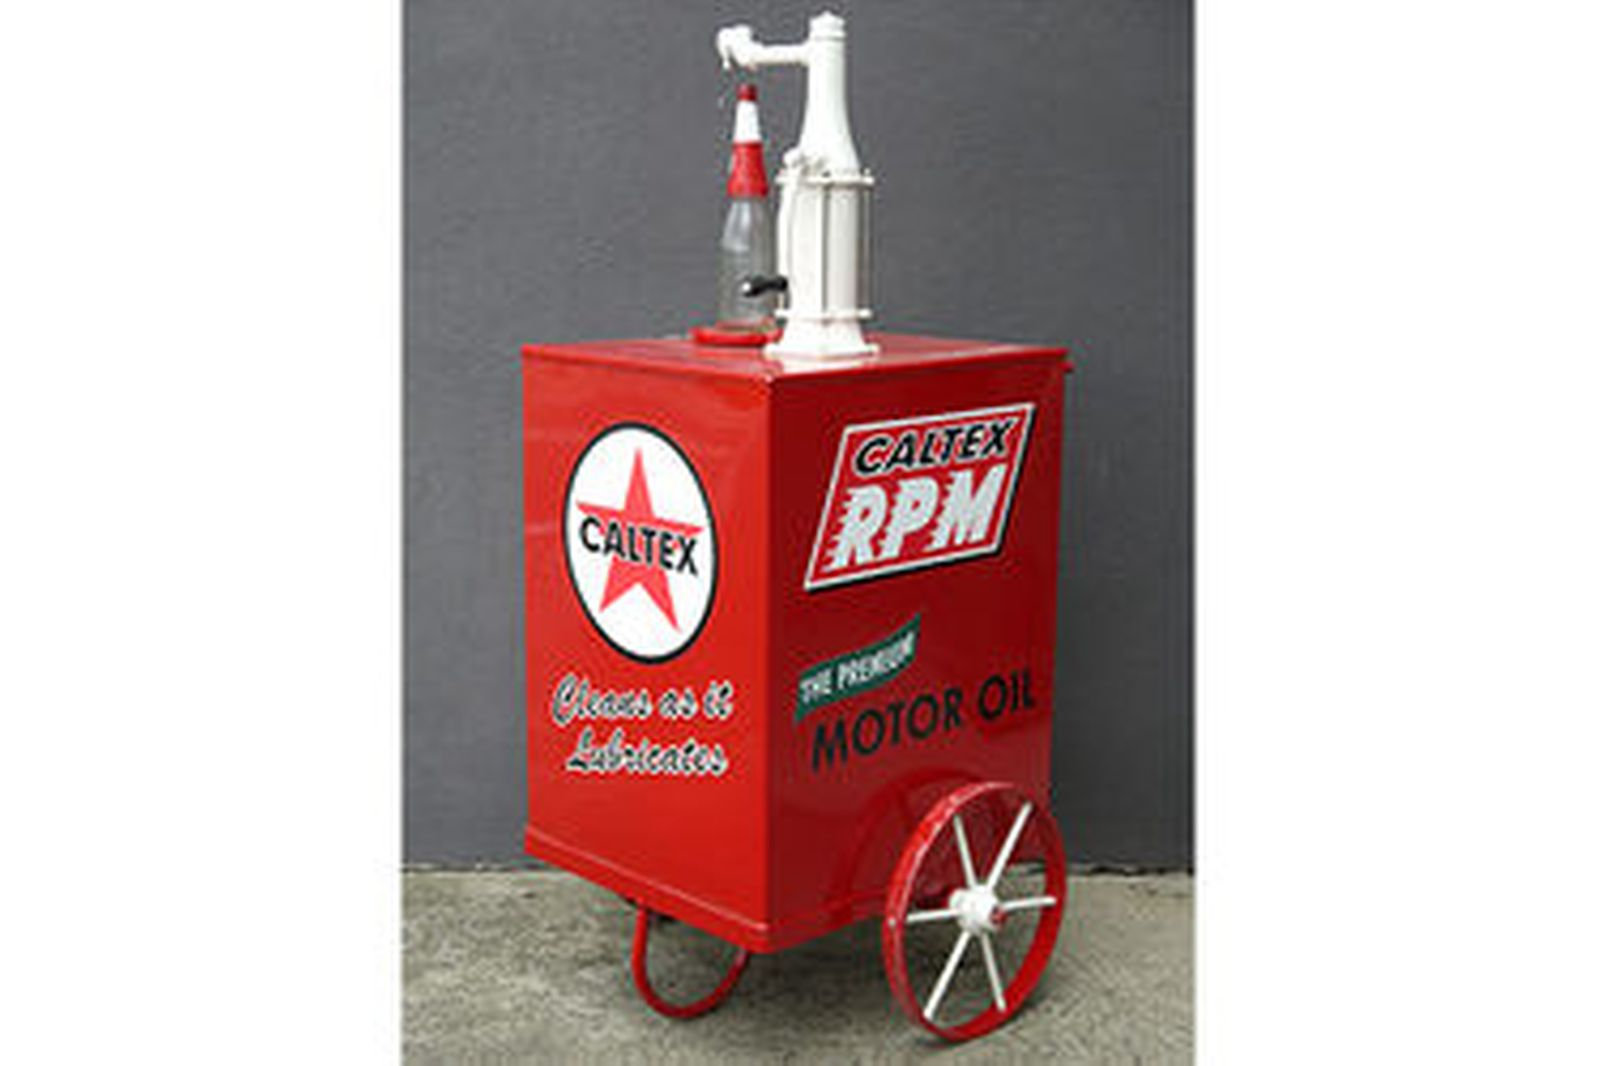 Sold Oil Cart Oil Pump In Caltex Livery With Imperial Quart